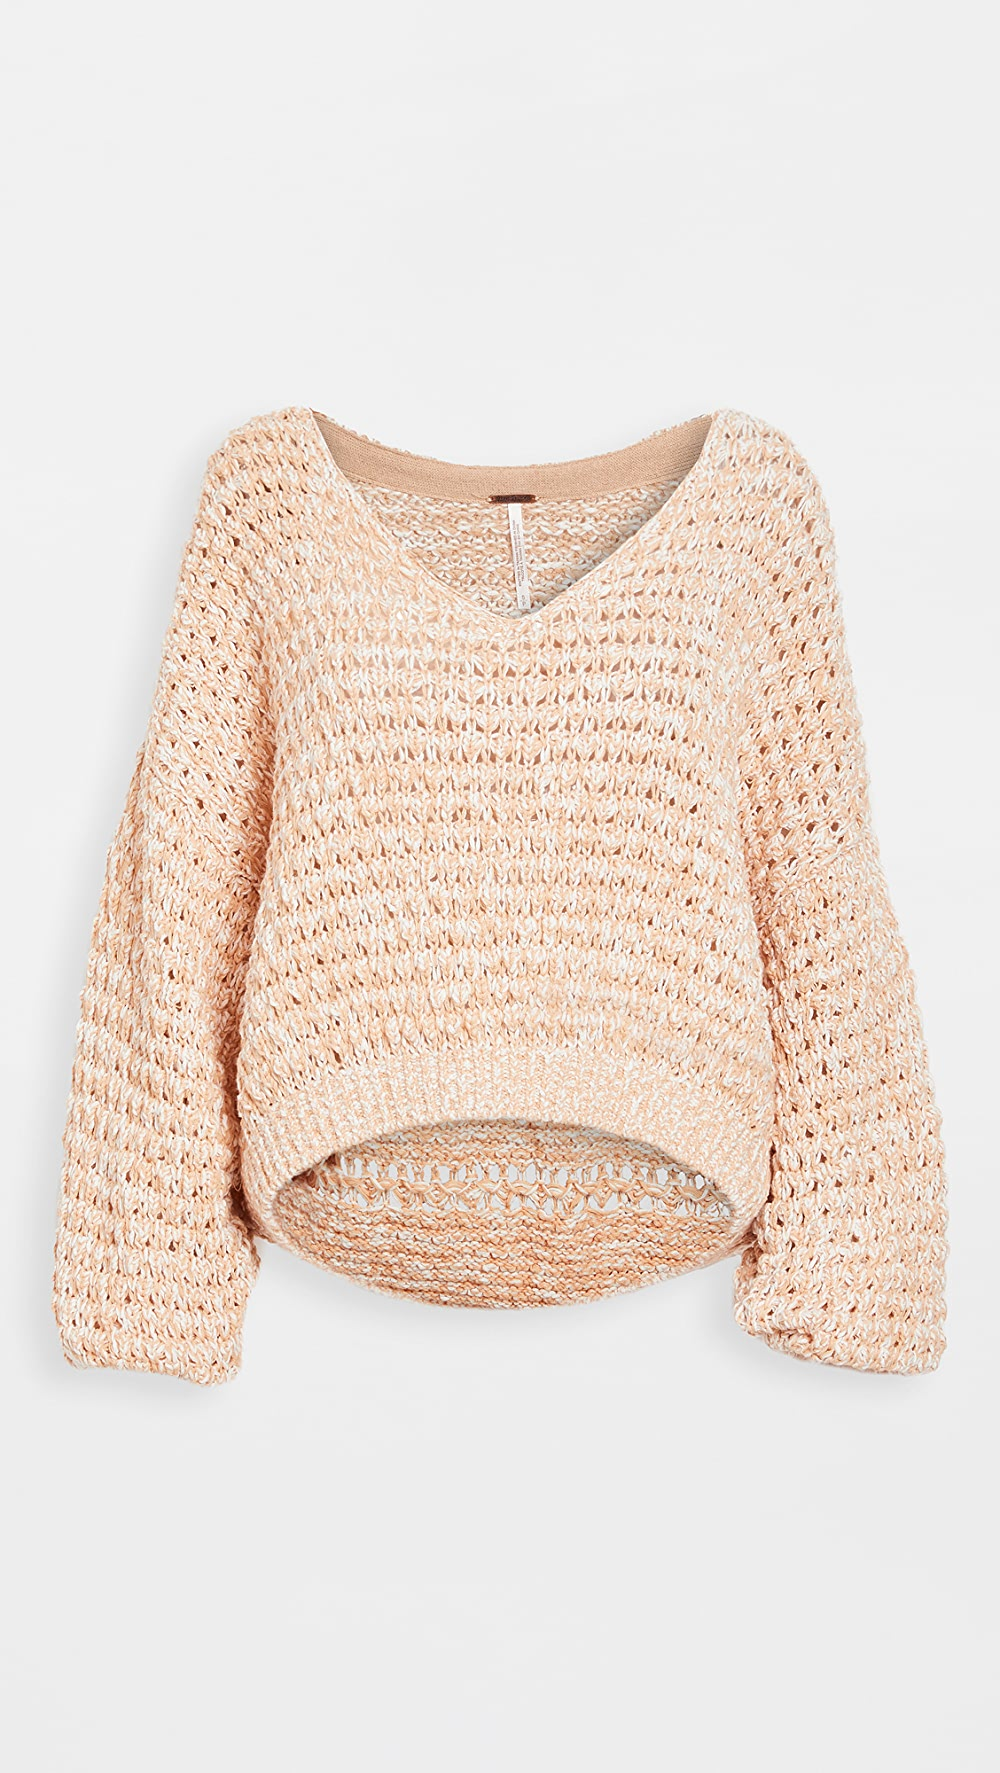 100% True Free People - Coconut V Sweater To Produce An Effect Toward Clear Vision